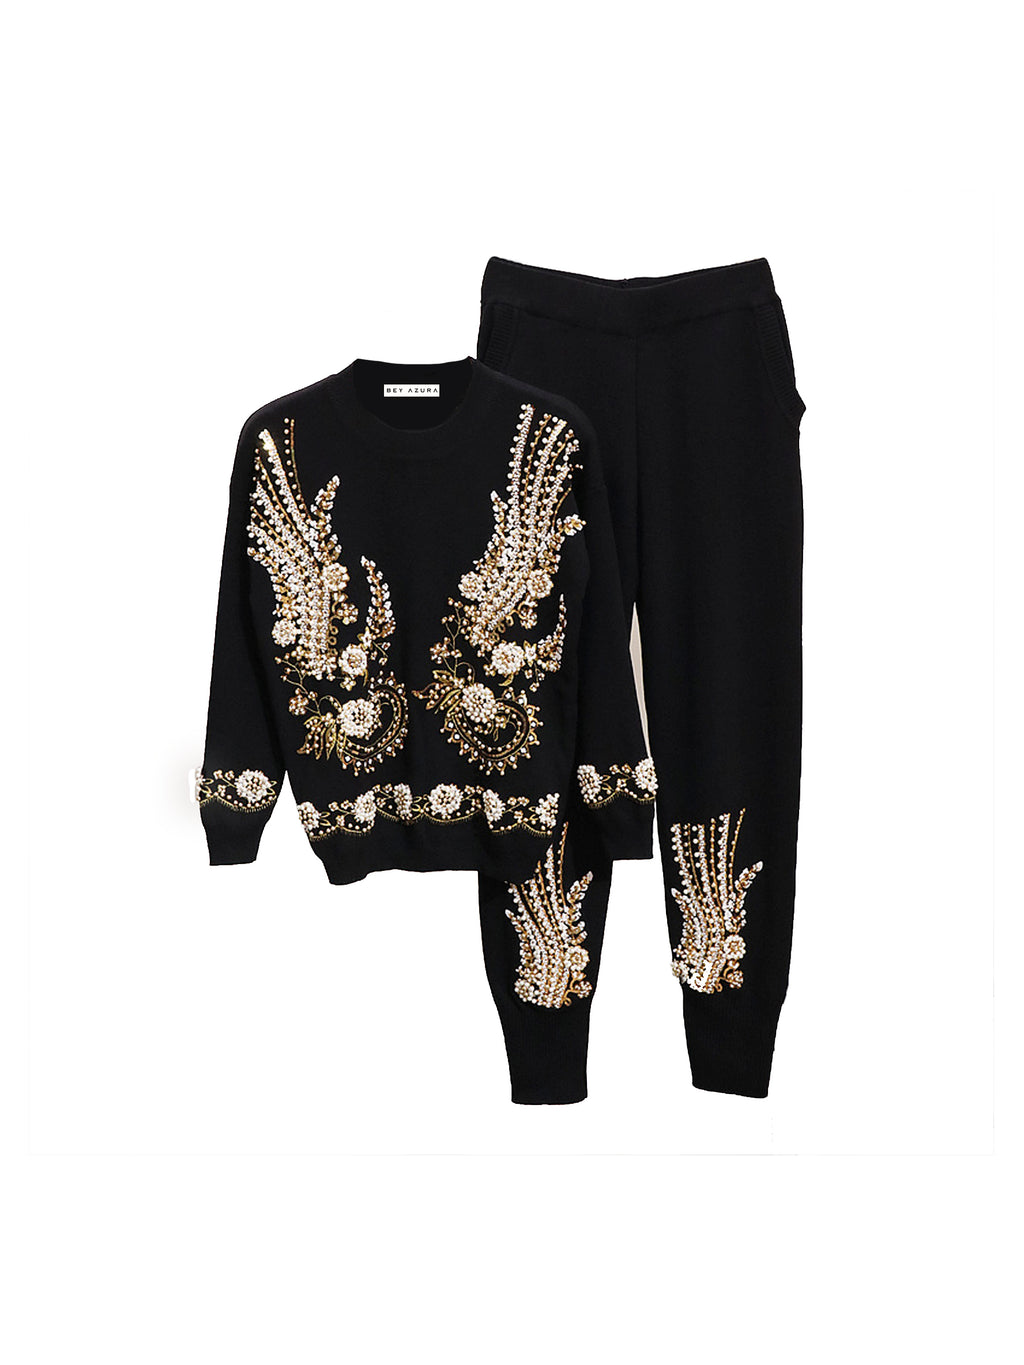 TWO PIECE LOUNGEWEAR WITH PEACOCK GOLD BEADINGS